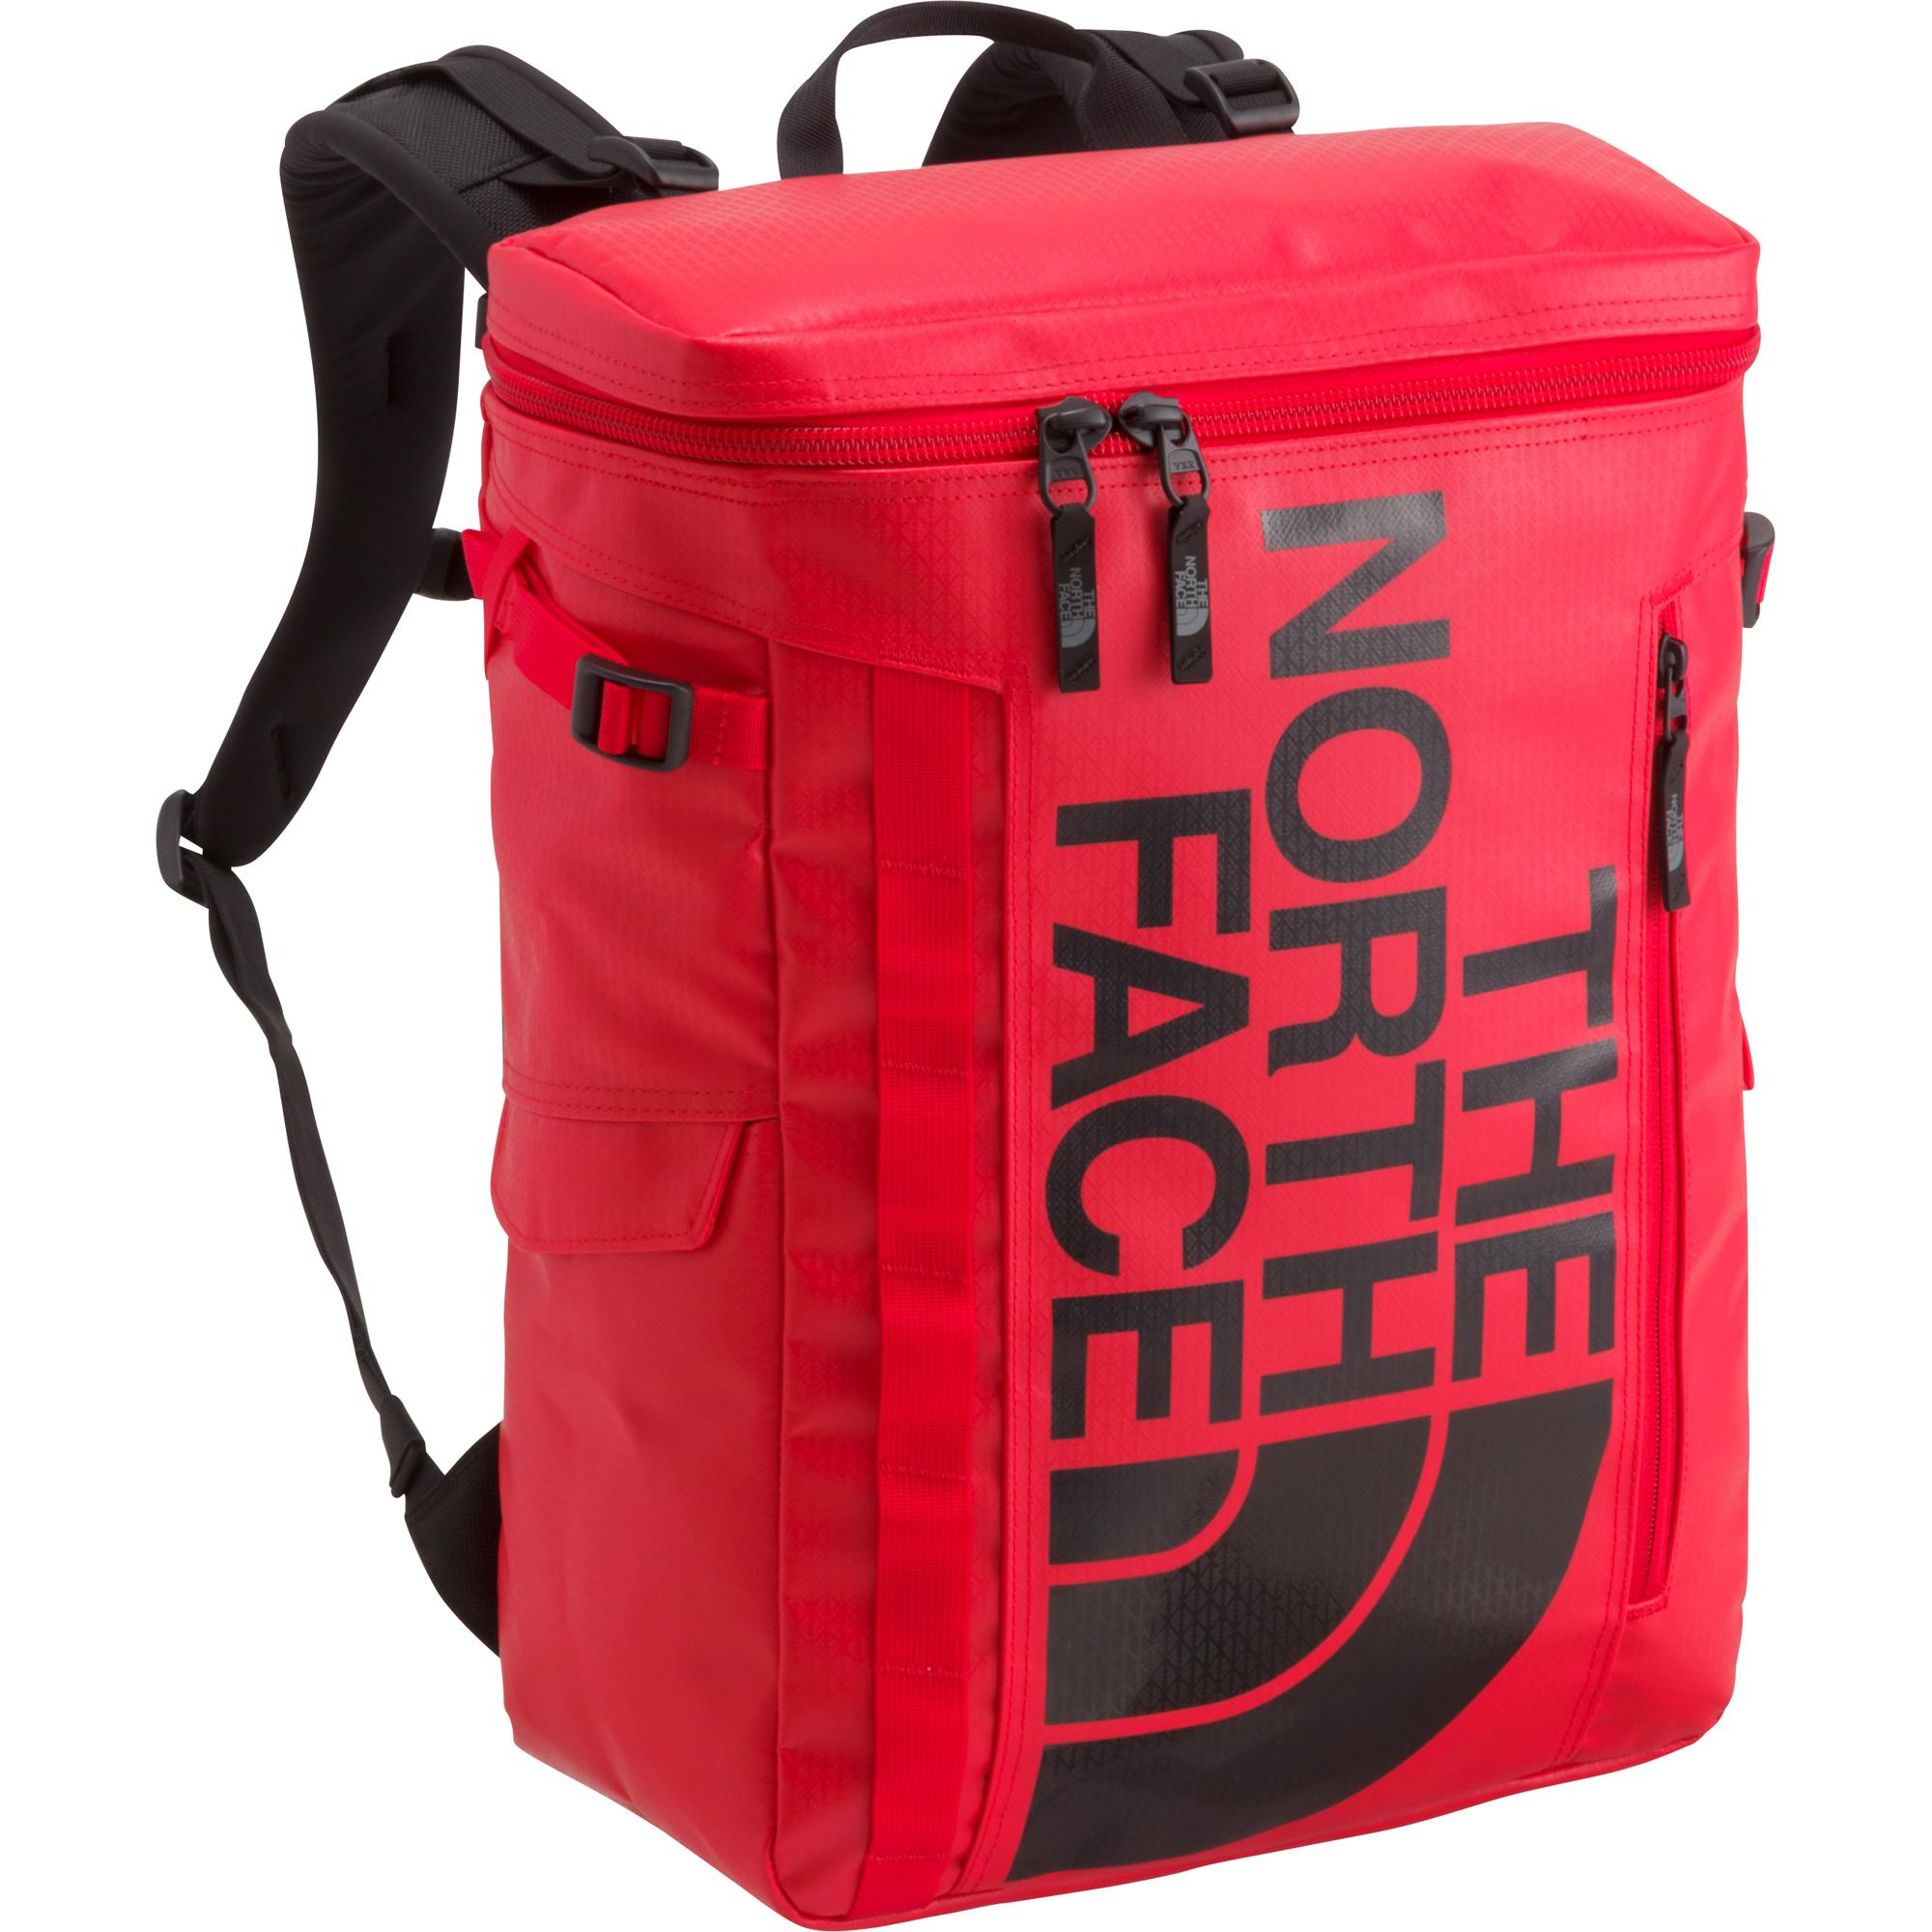 5e6d54d5b Authentic The North Face Base Camp Fuse Box II Backpack 2019 New Designs  30L waterproof